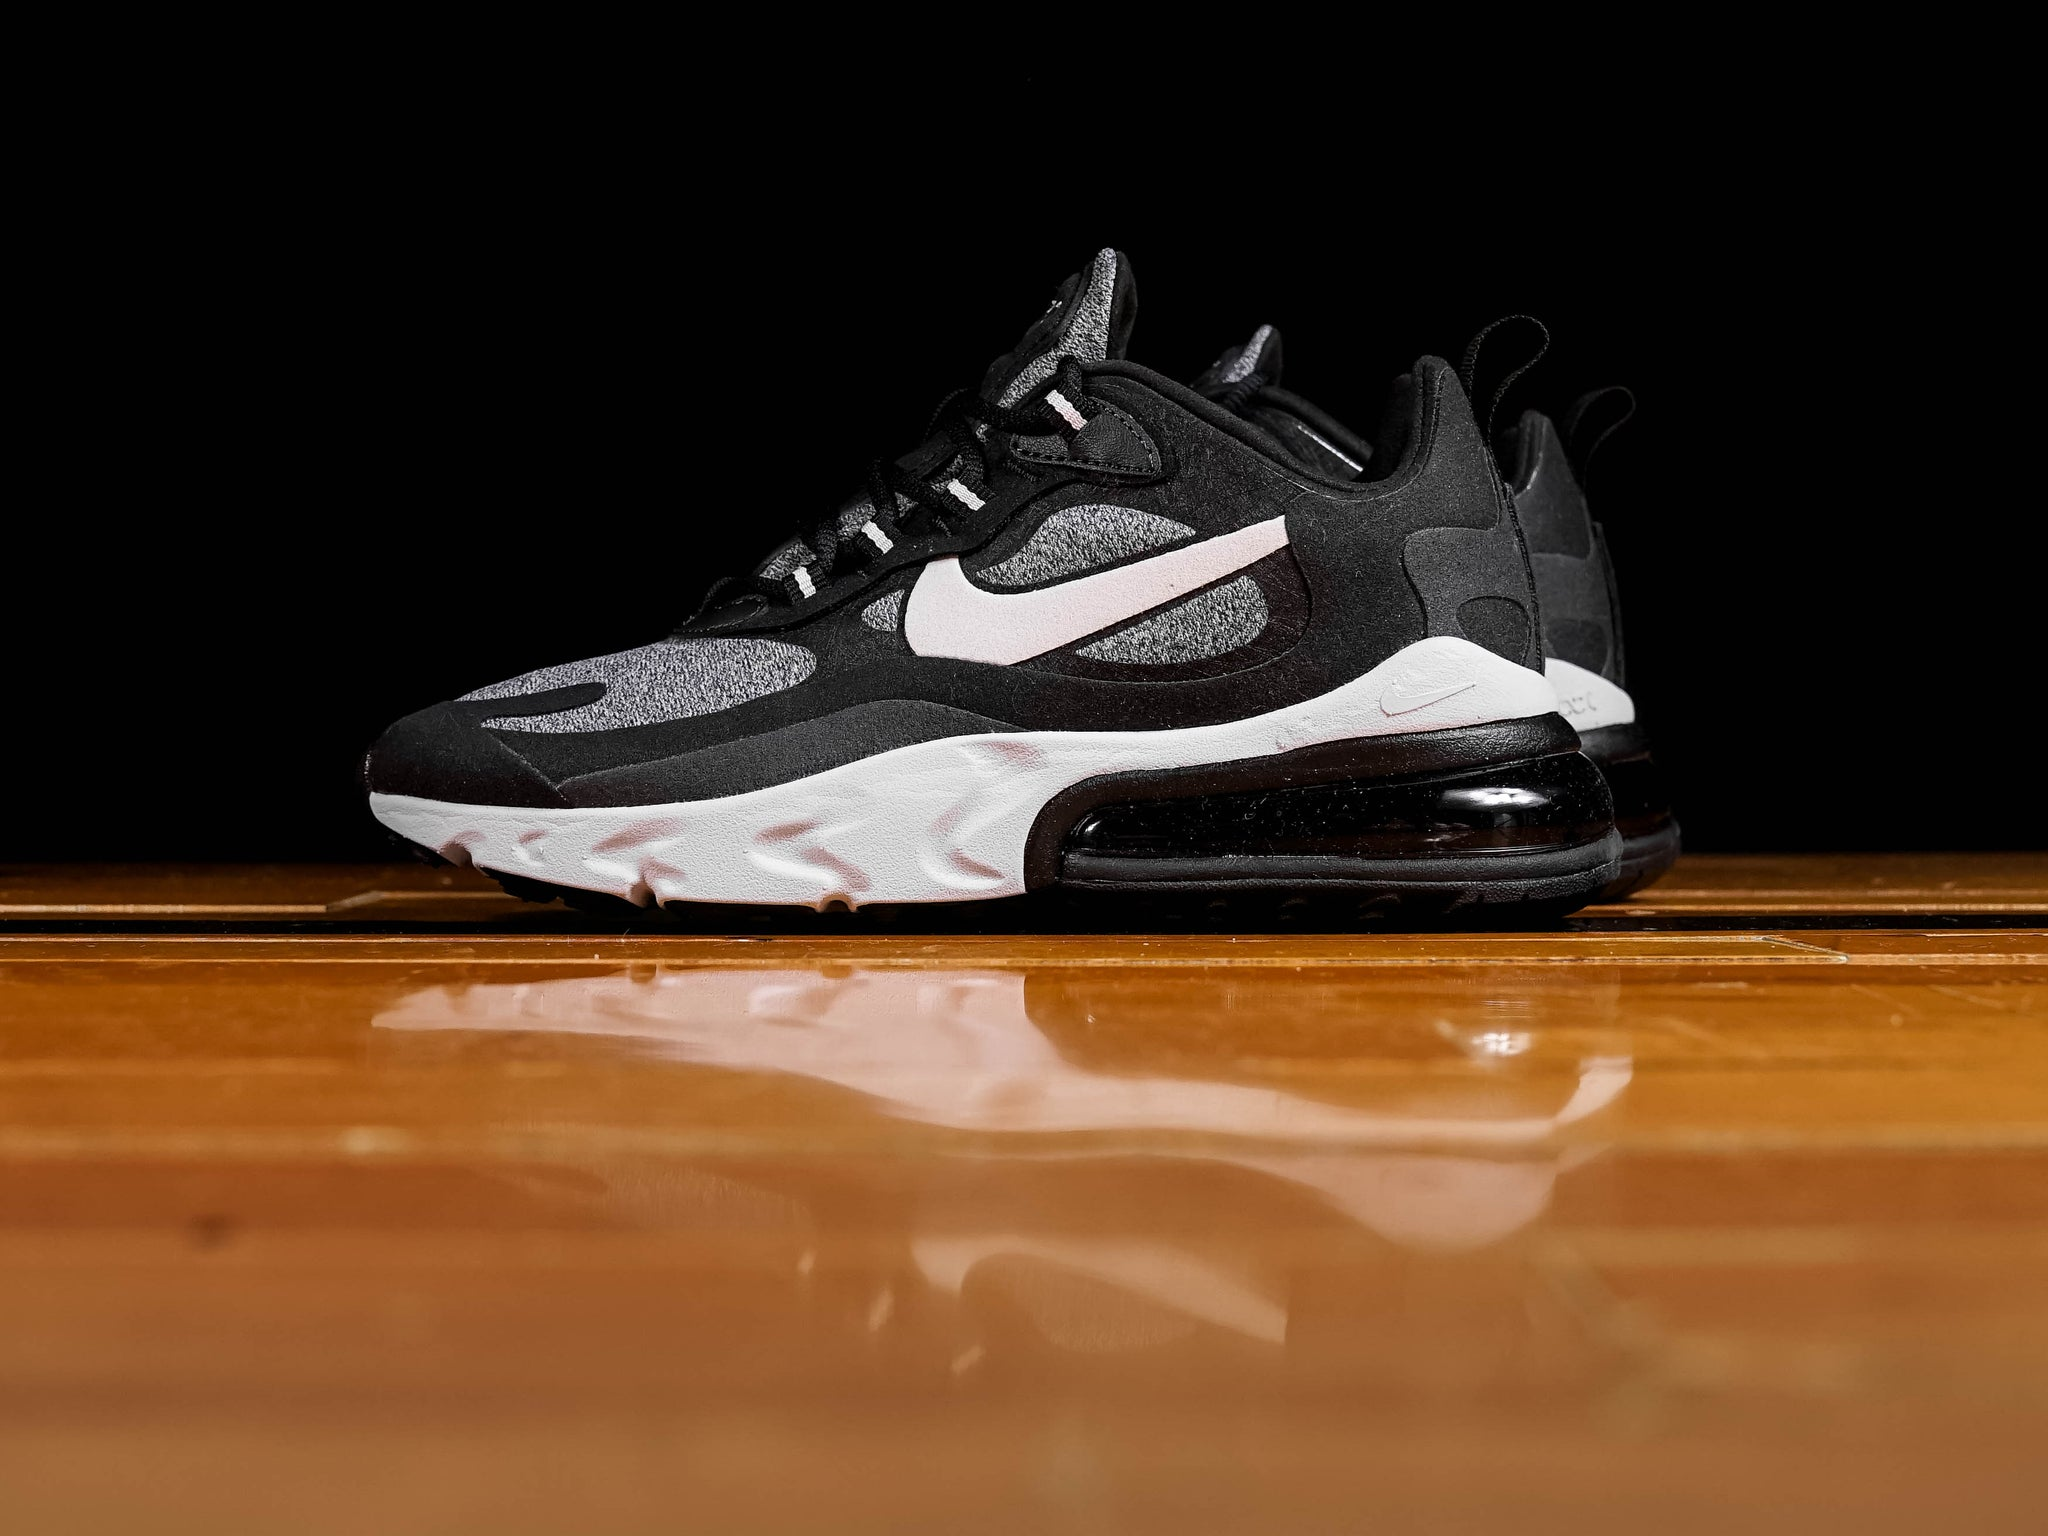 new arrival f13bf 277c8 Women's Nike Air Max 270 React 'Optical' [AT6174-001]